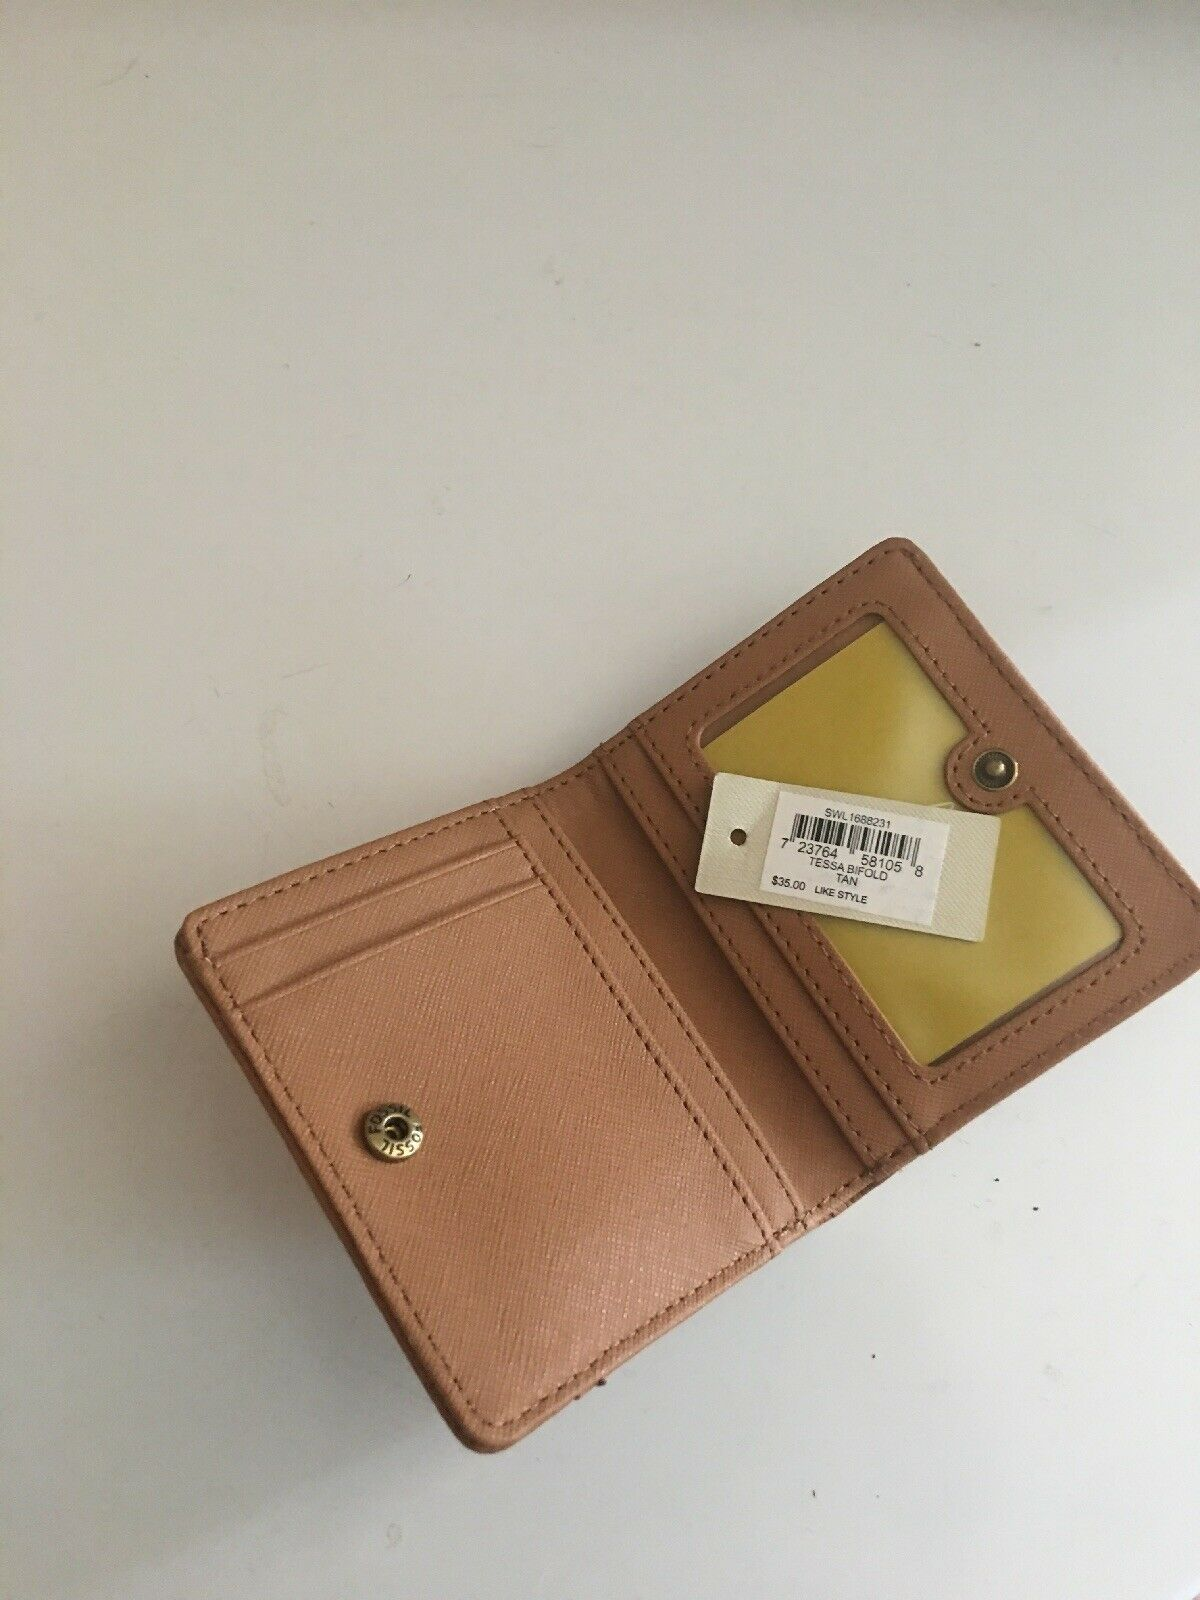 FOSSIL TESSA Leather Bifold Wallet Women's Medium Cognac New NWT image 4